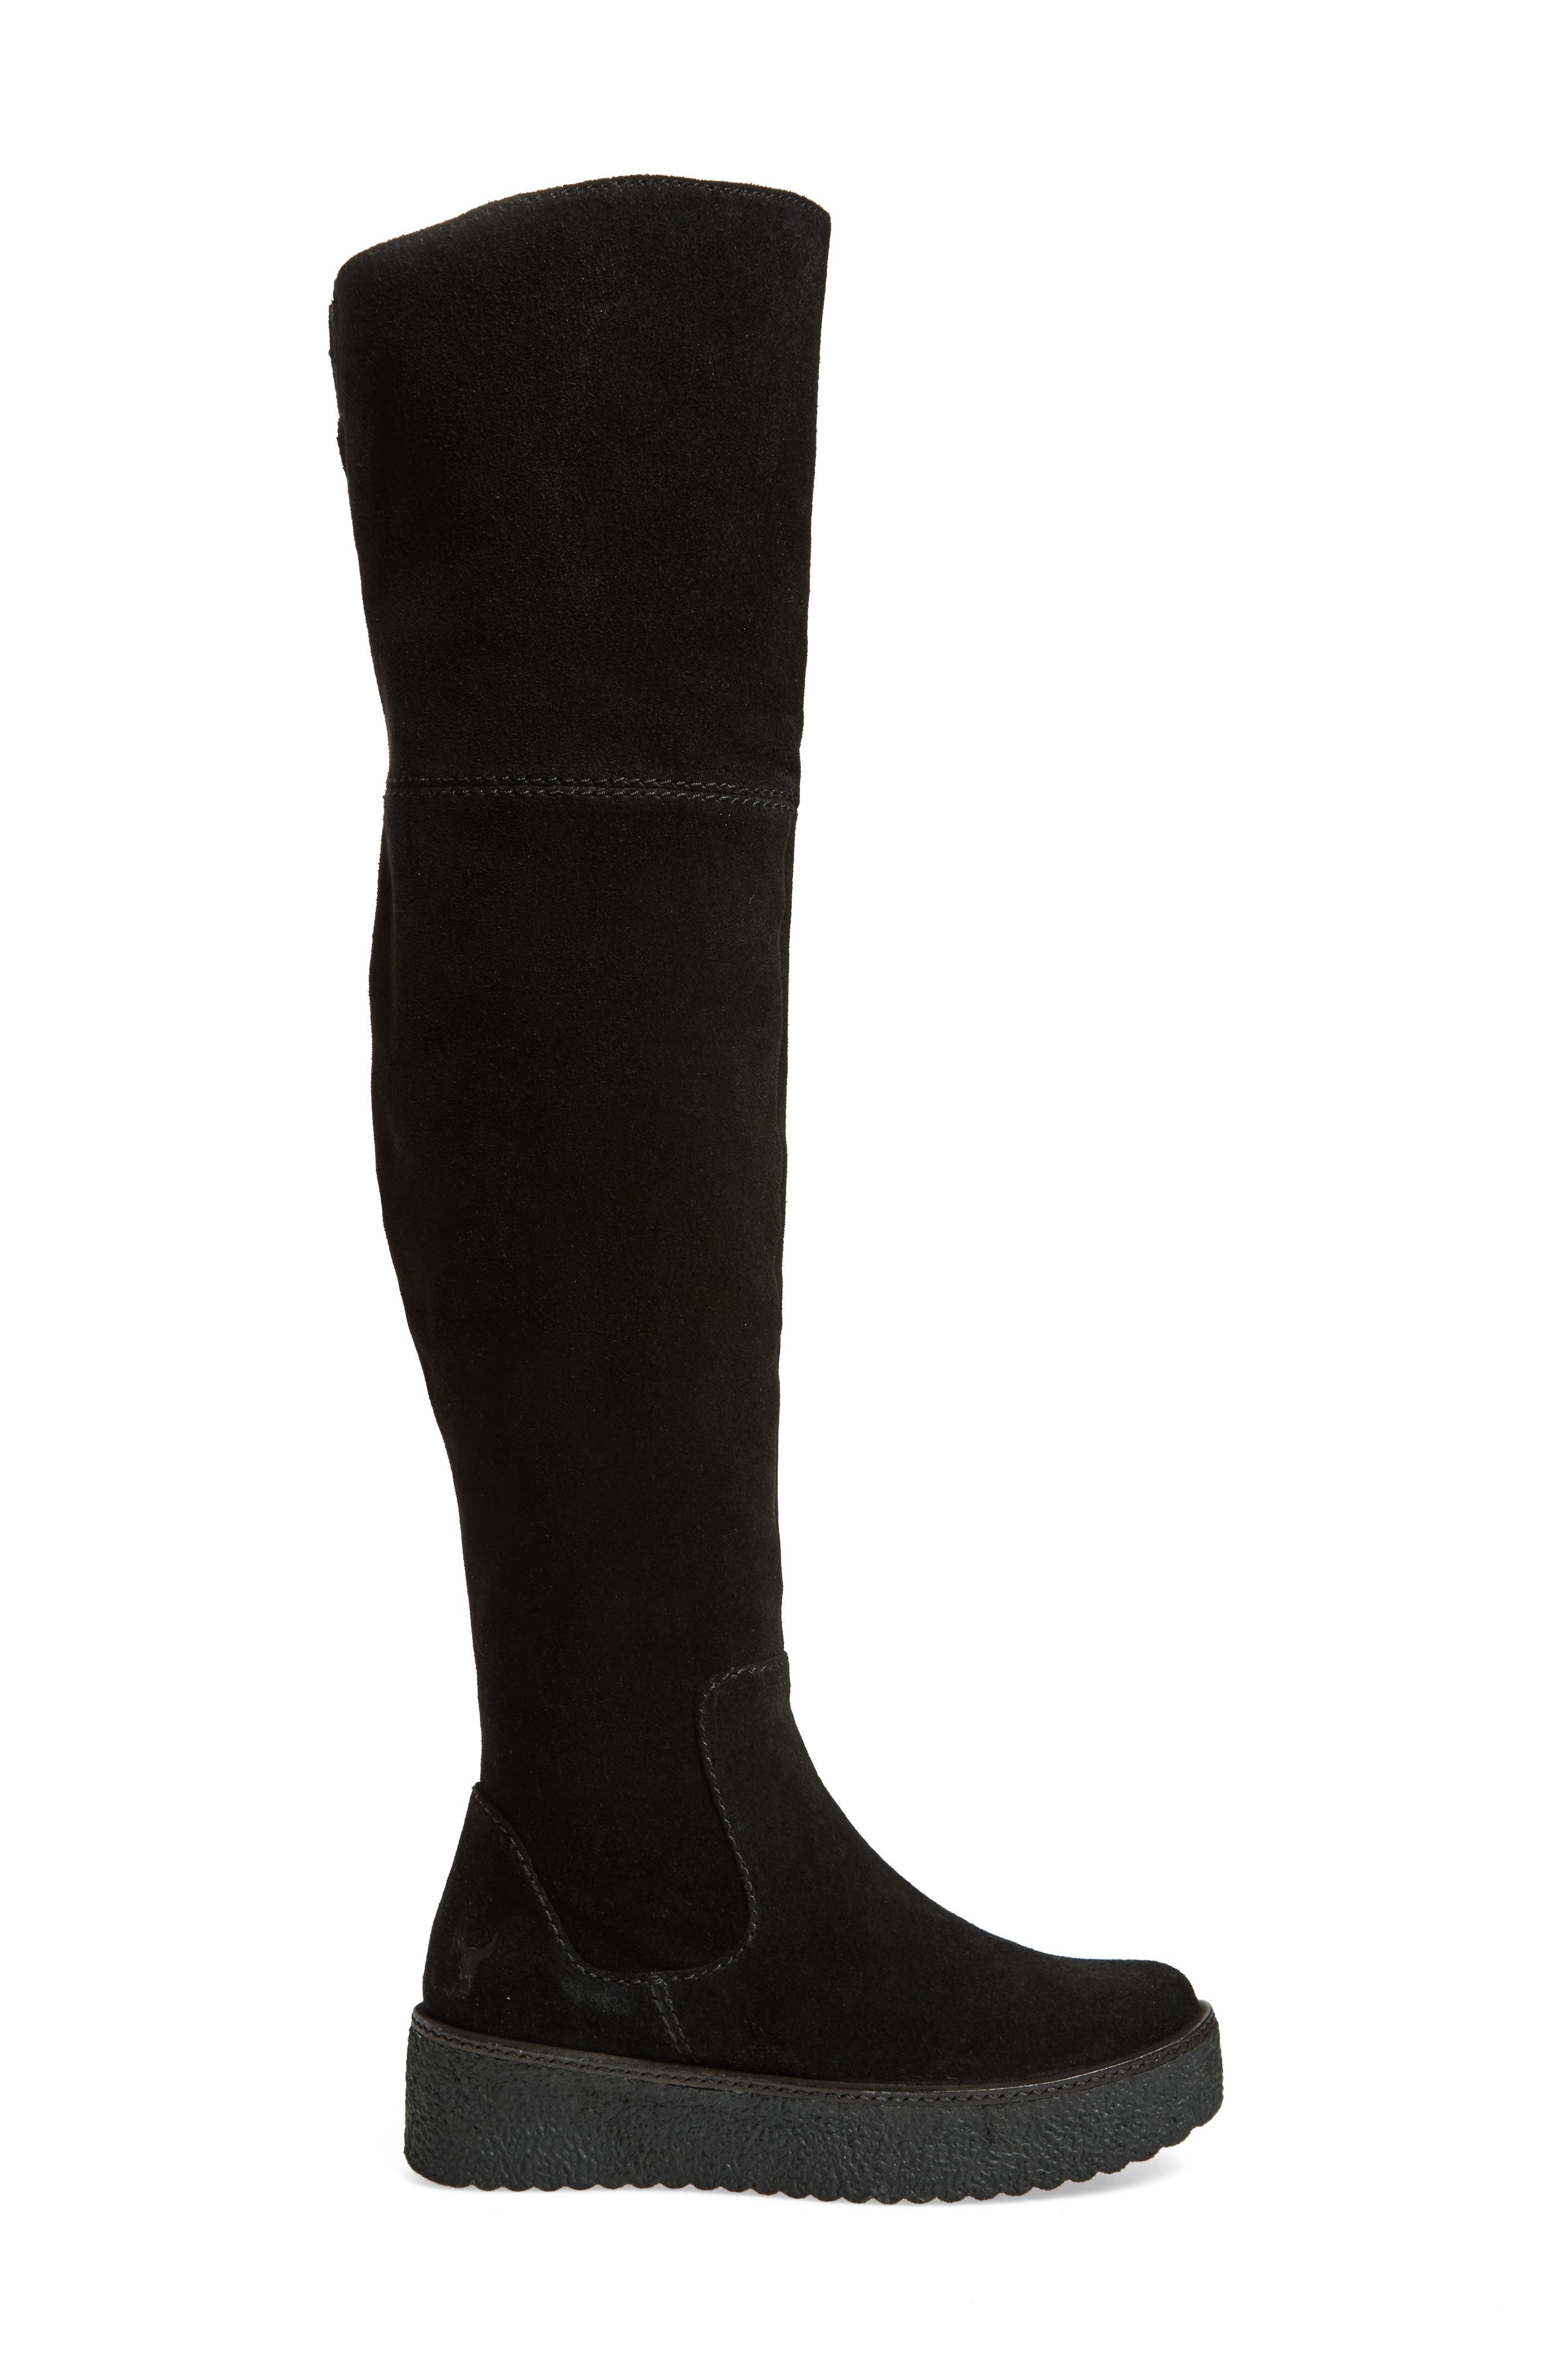 Tazza Over the Knee Boot,                             Alternate thumbnail 3, color,                             Black Suede